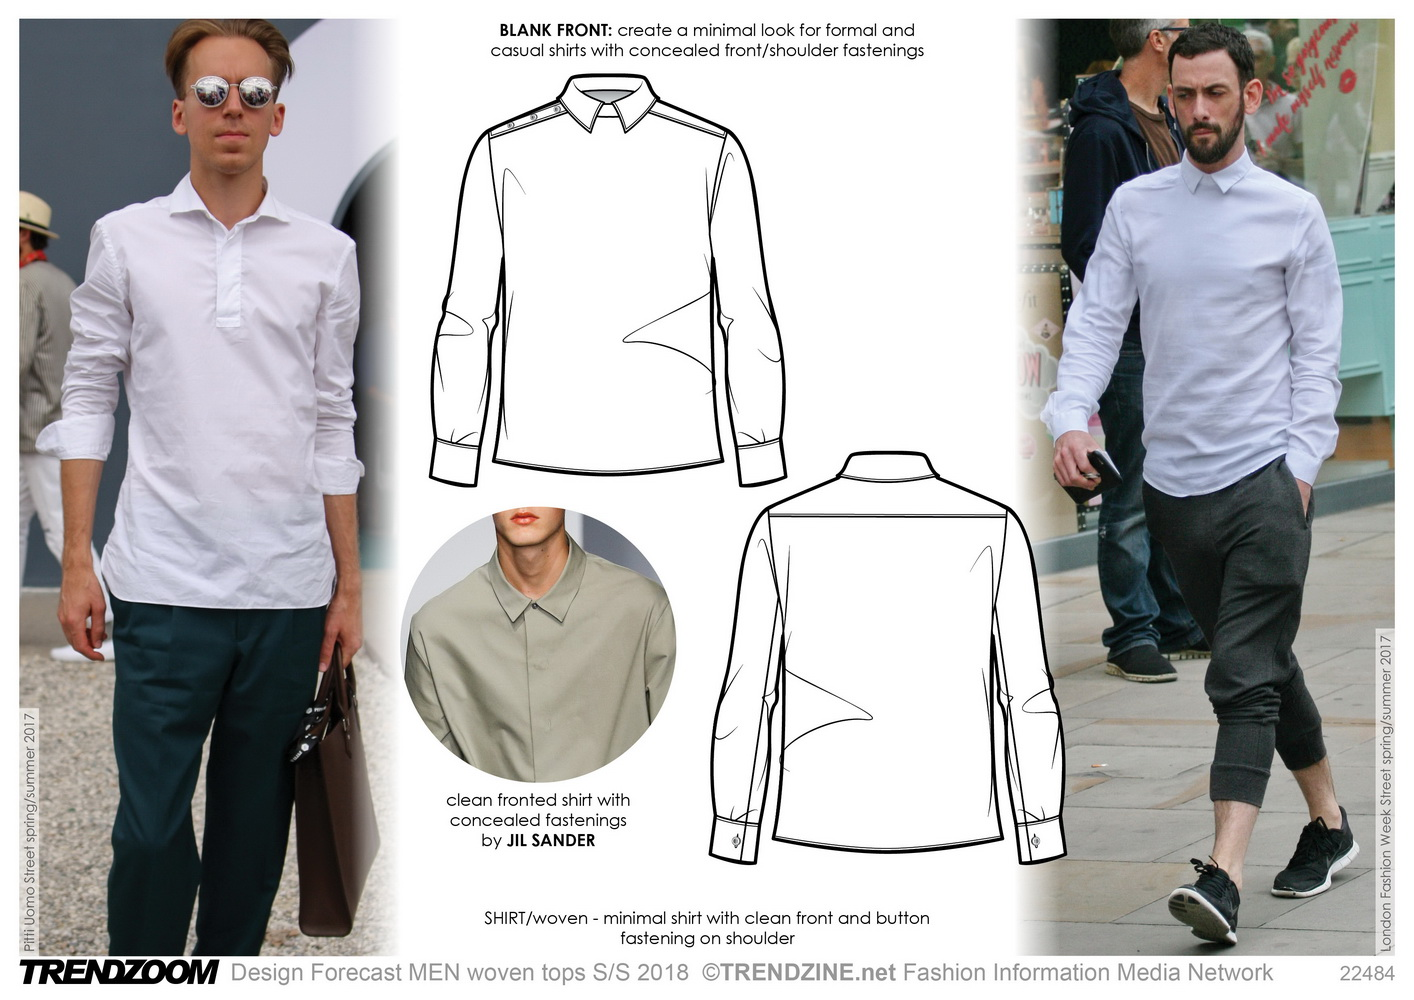 S Formal Shirts Designs | Trendzoom Design Forecast Men Shirts Woven Tops S S 18 Tendenze